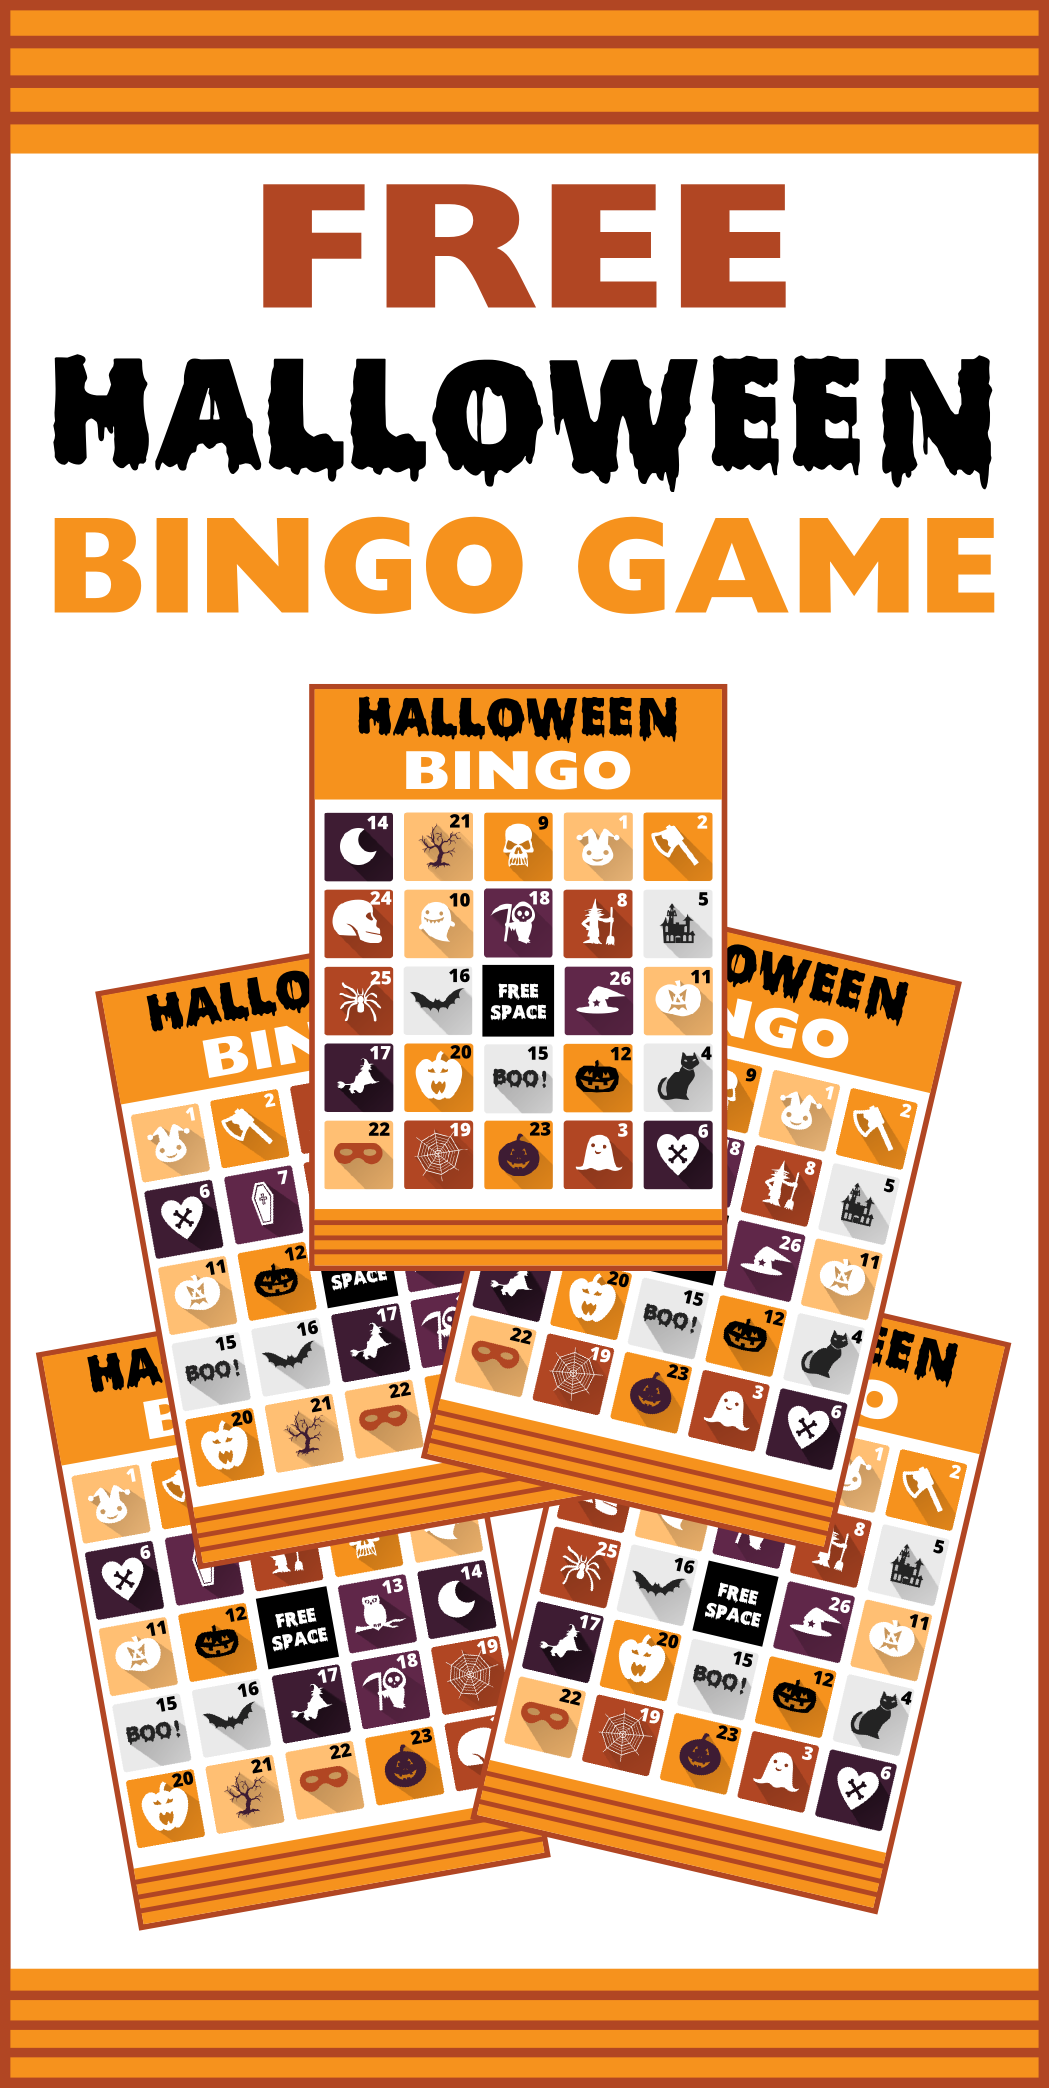 Canny image regarding halloween bingo free printable